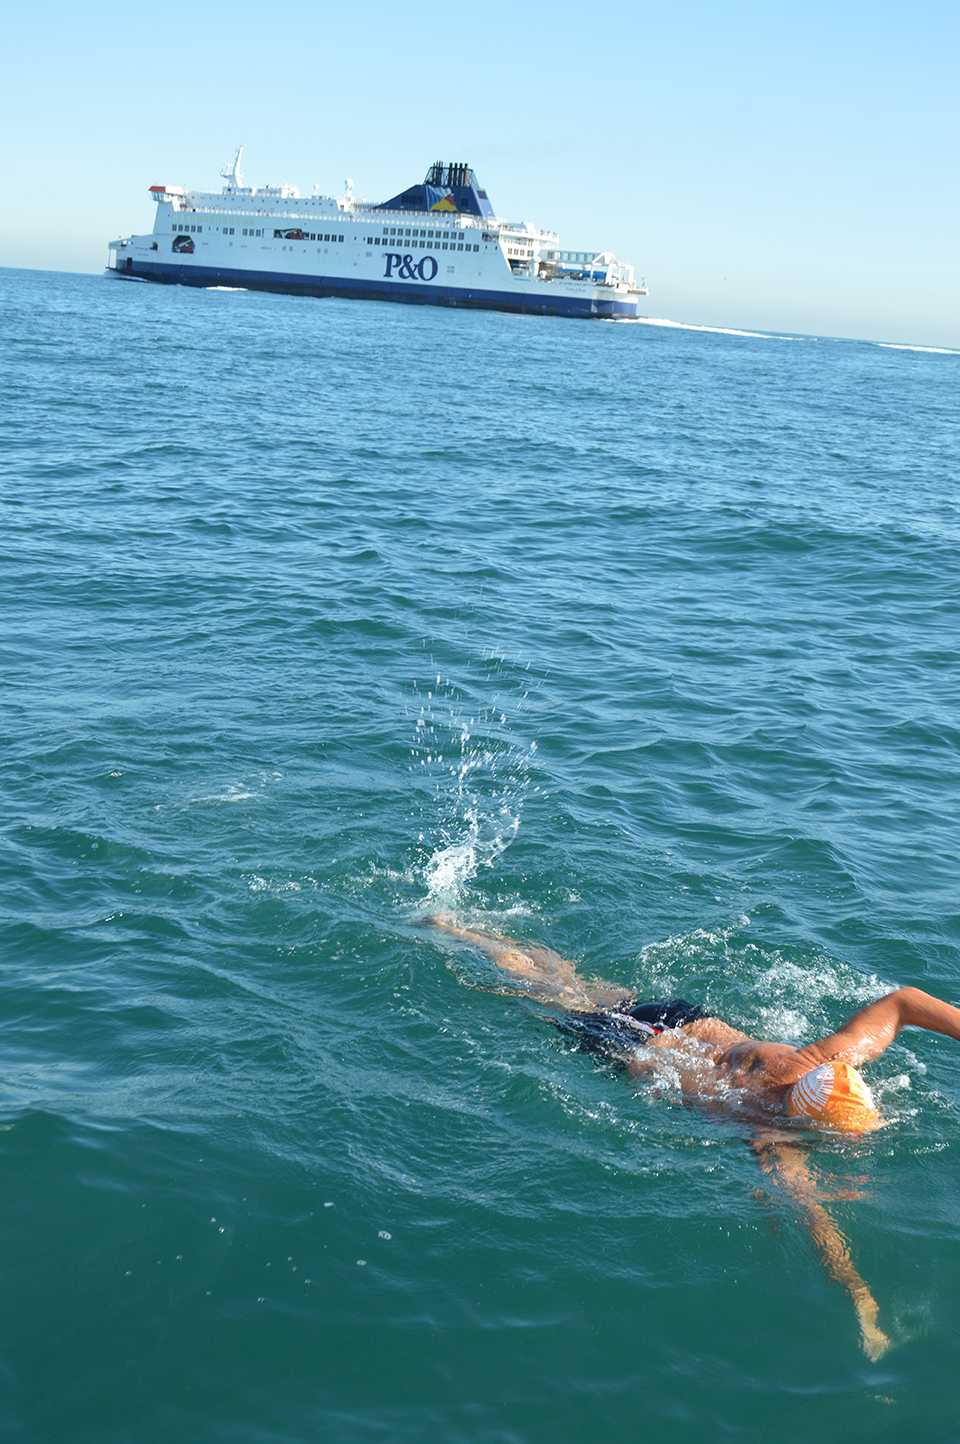 Swimming-in-the-shipping-lane